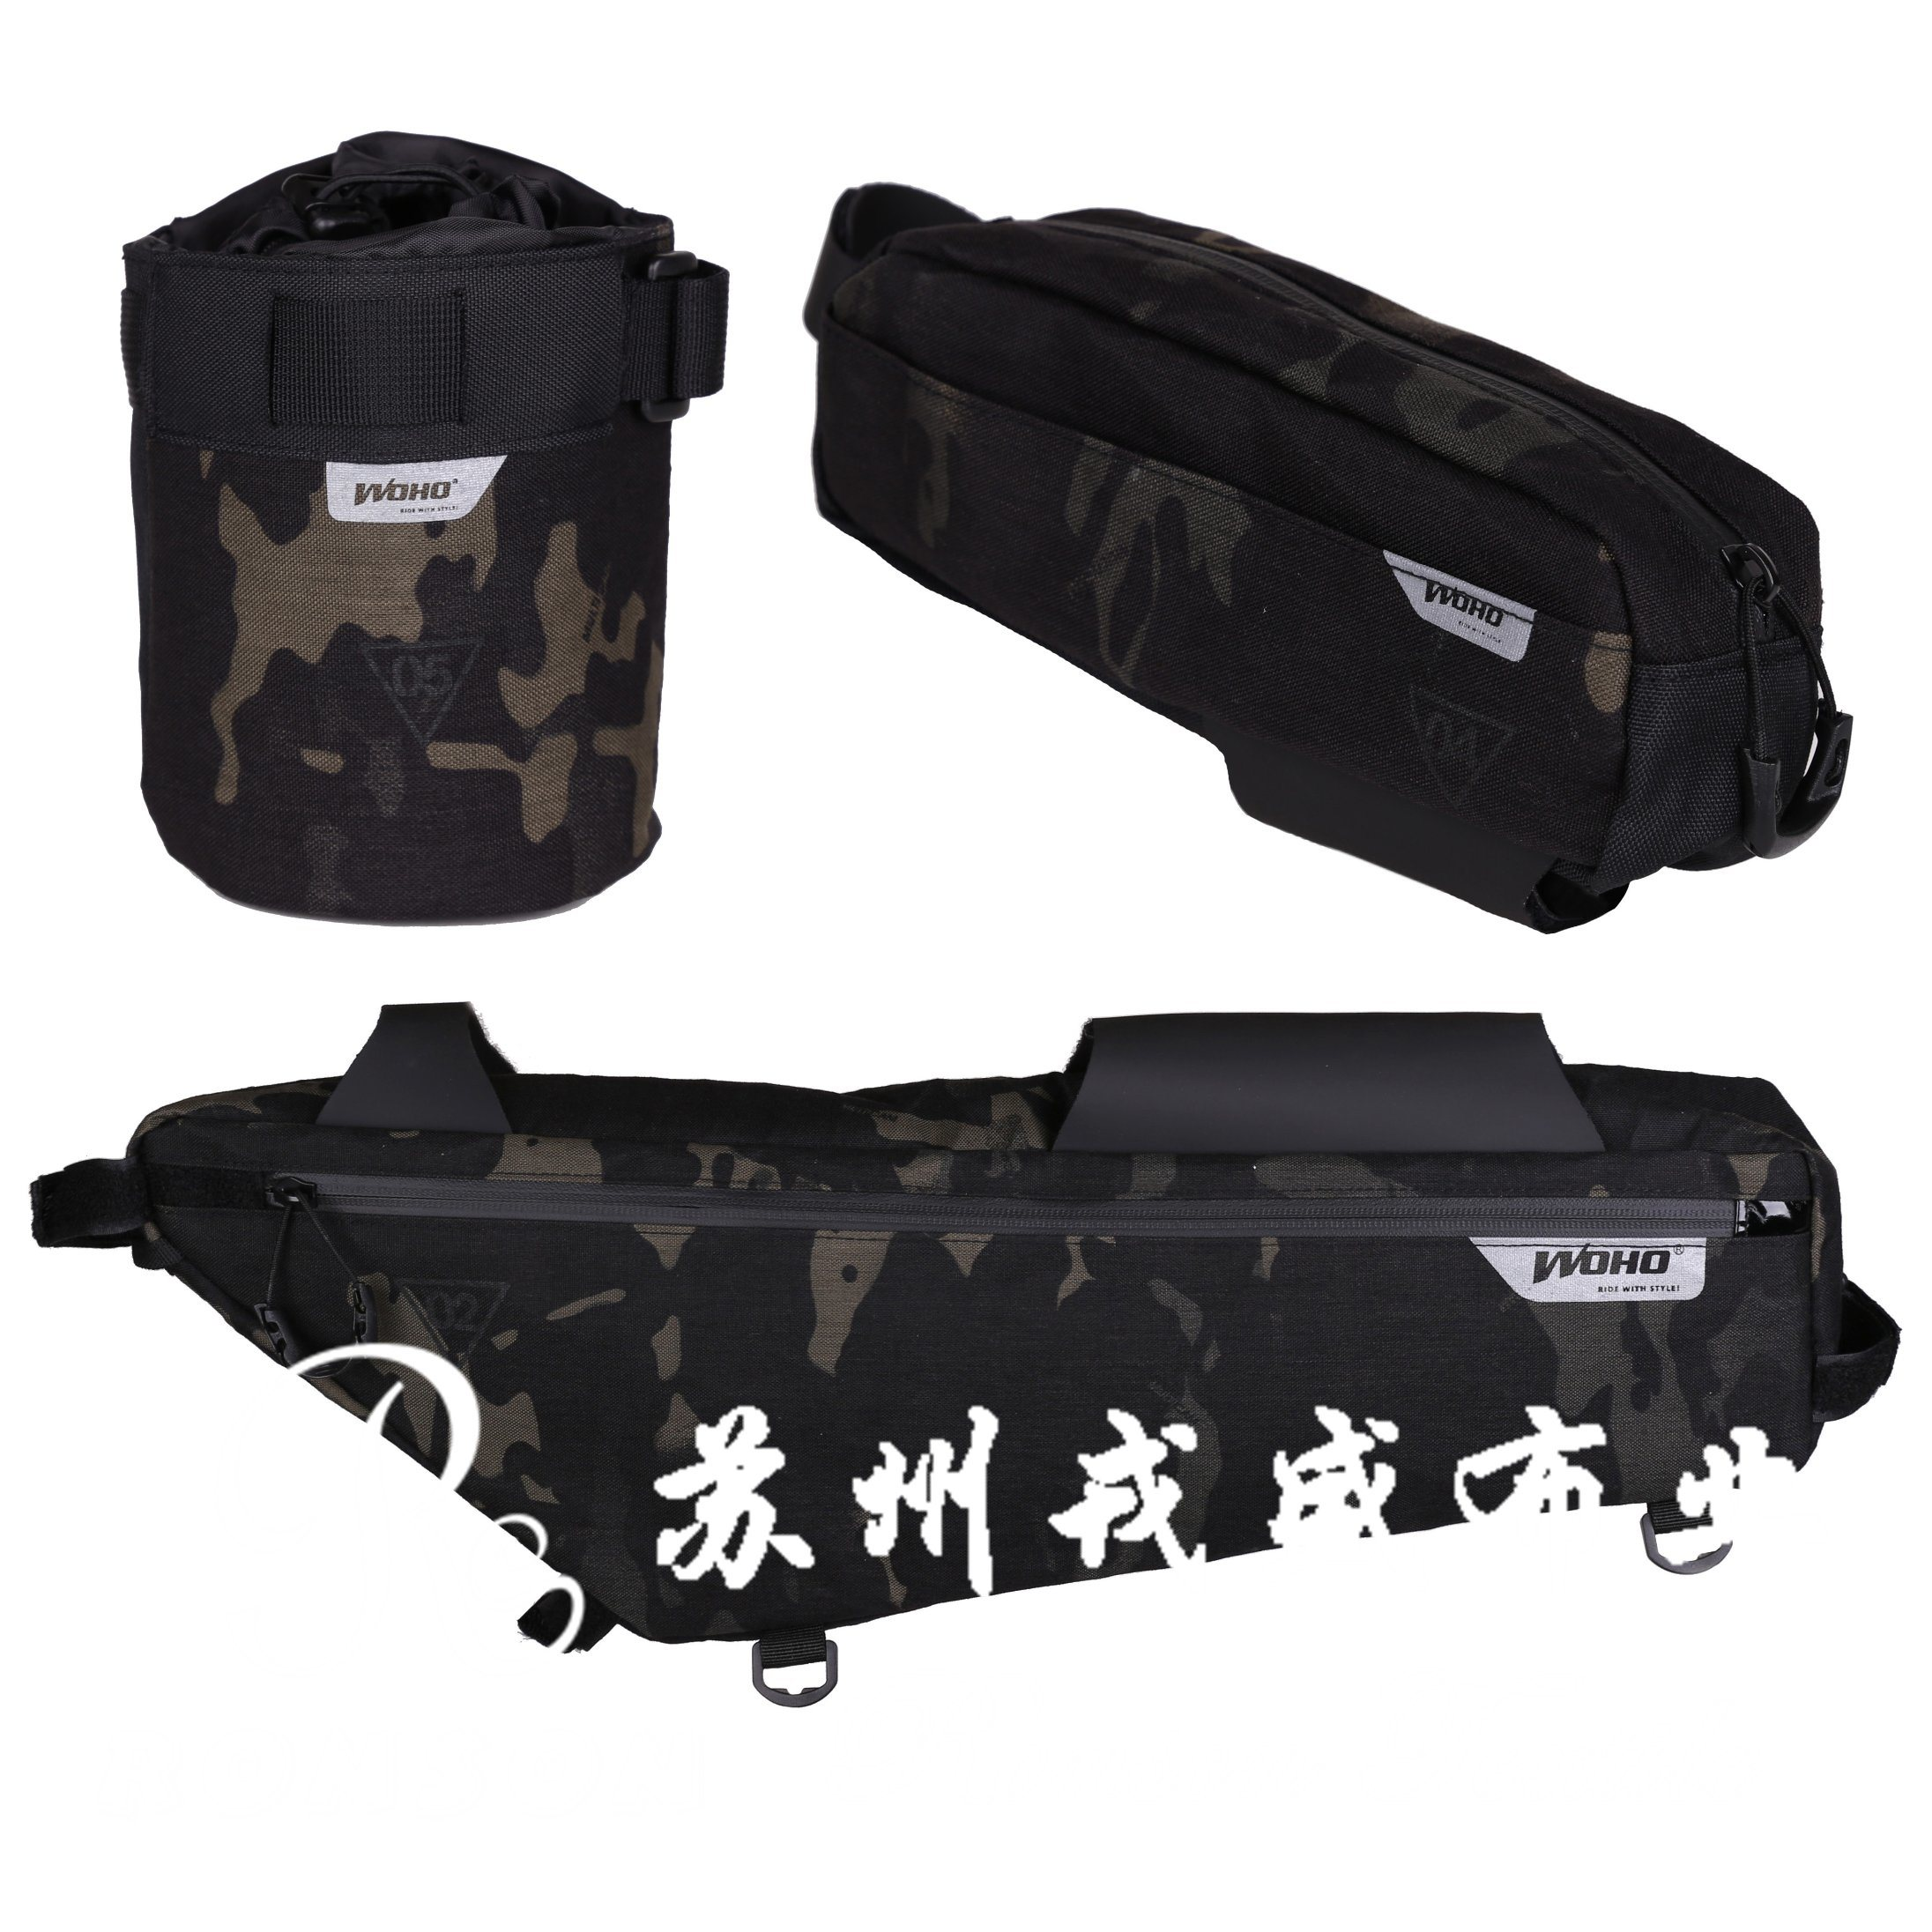 Multicam Black Cp Camouflage, 1050d PU Backing Cordura with Waterproof